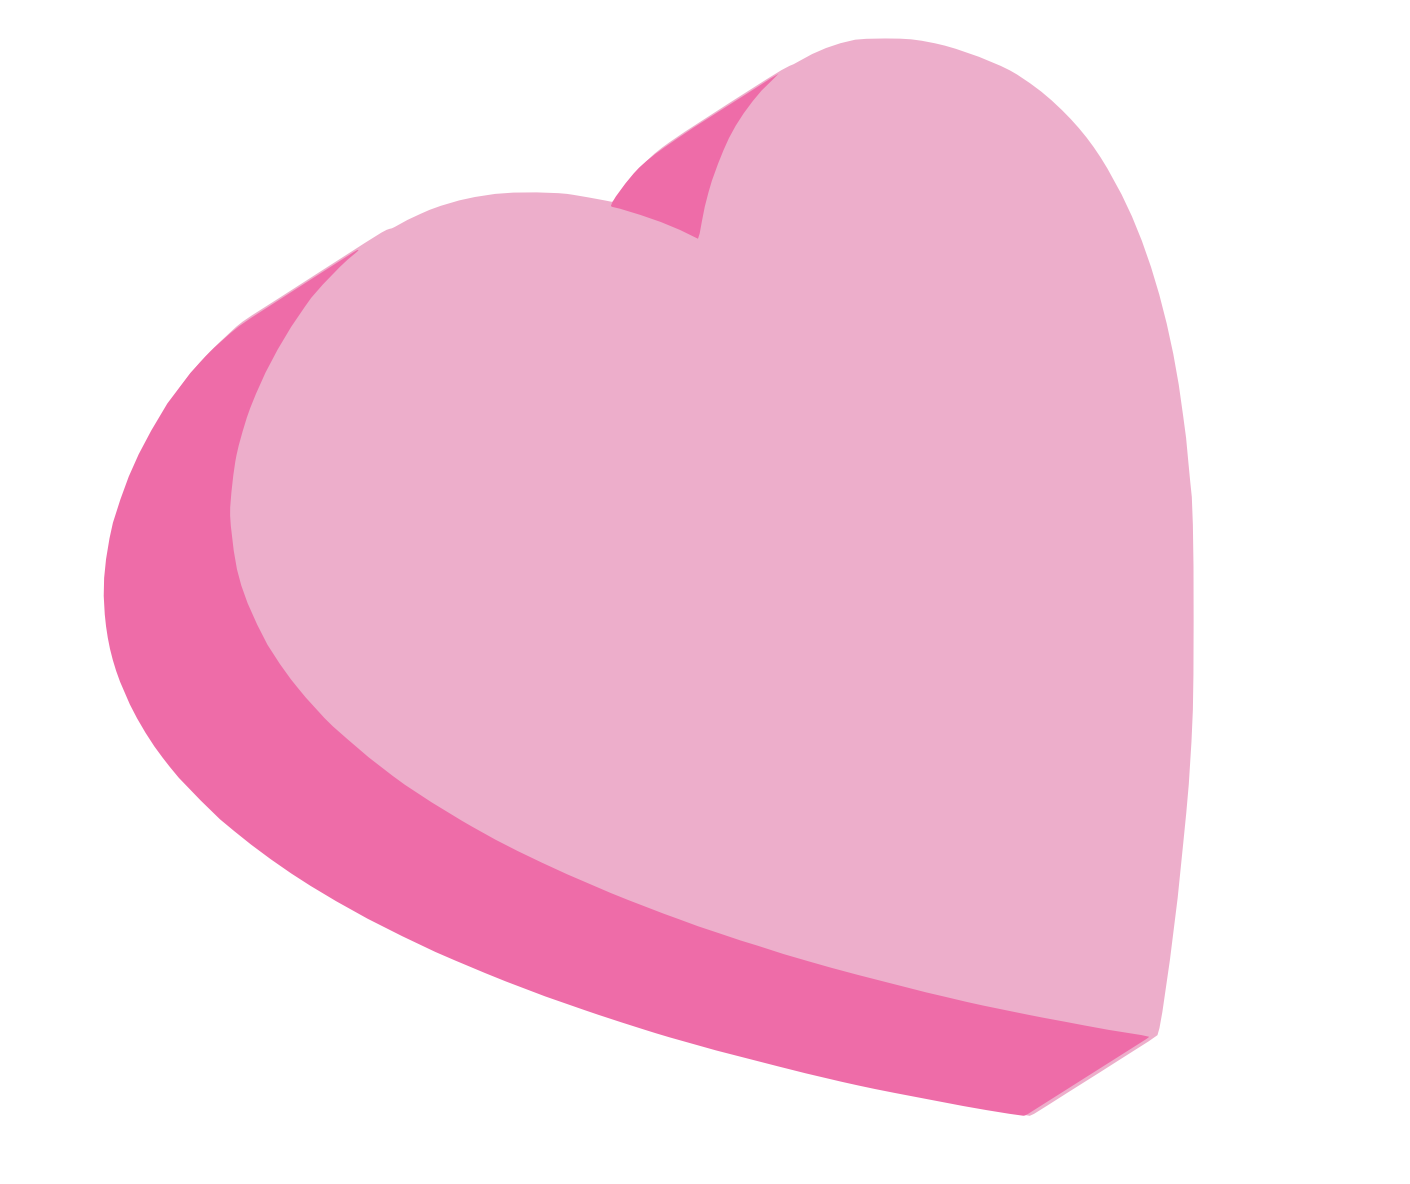 Valentines day candy heart clipart.